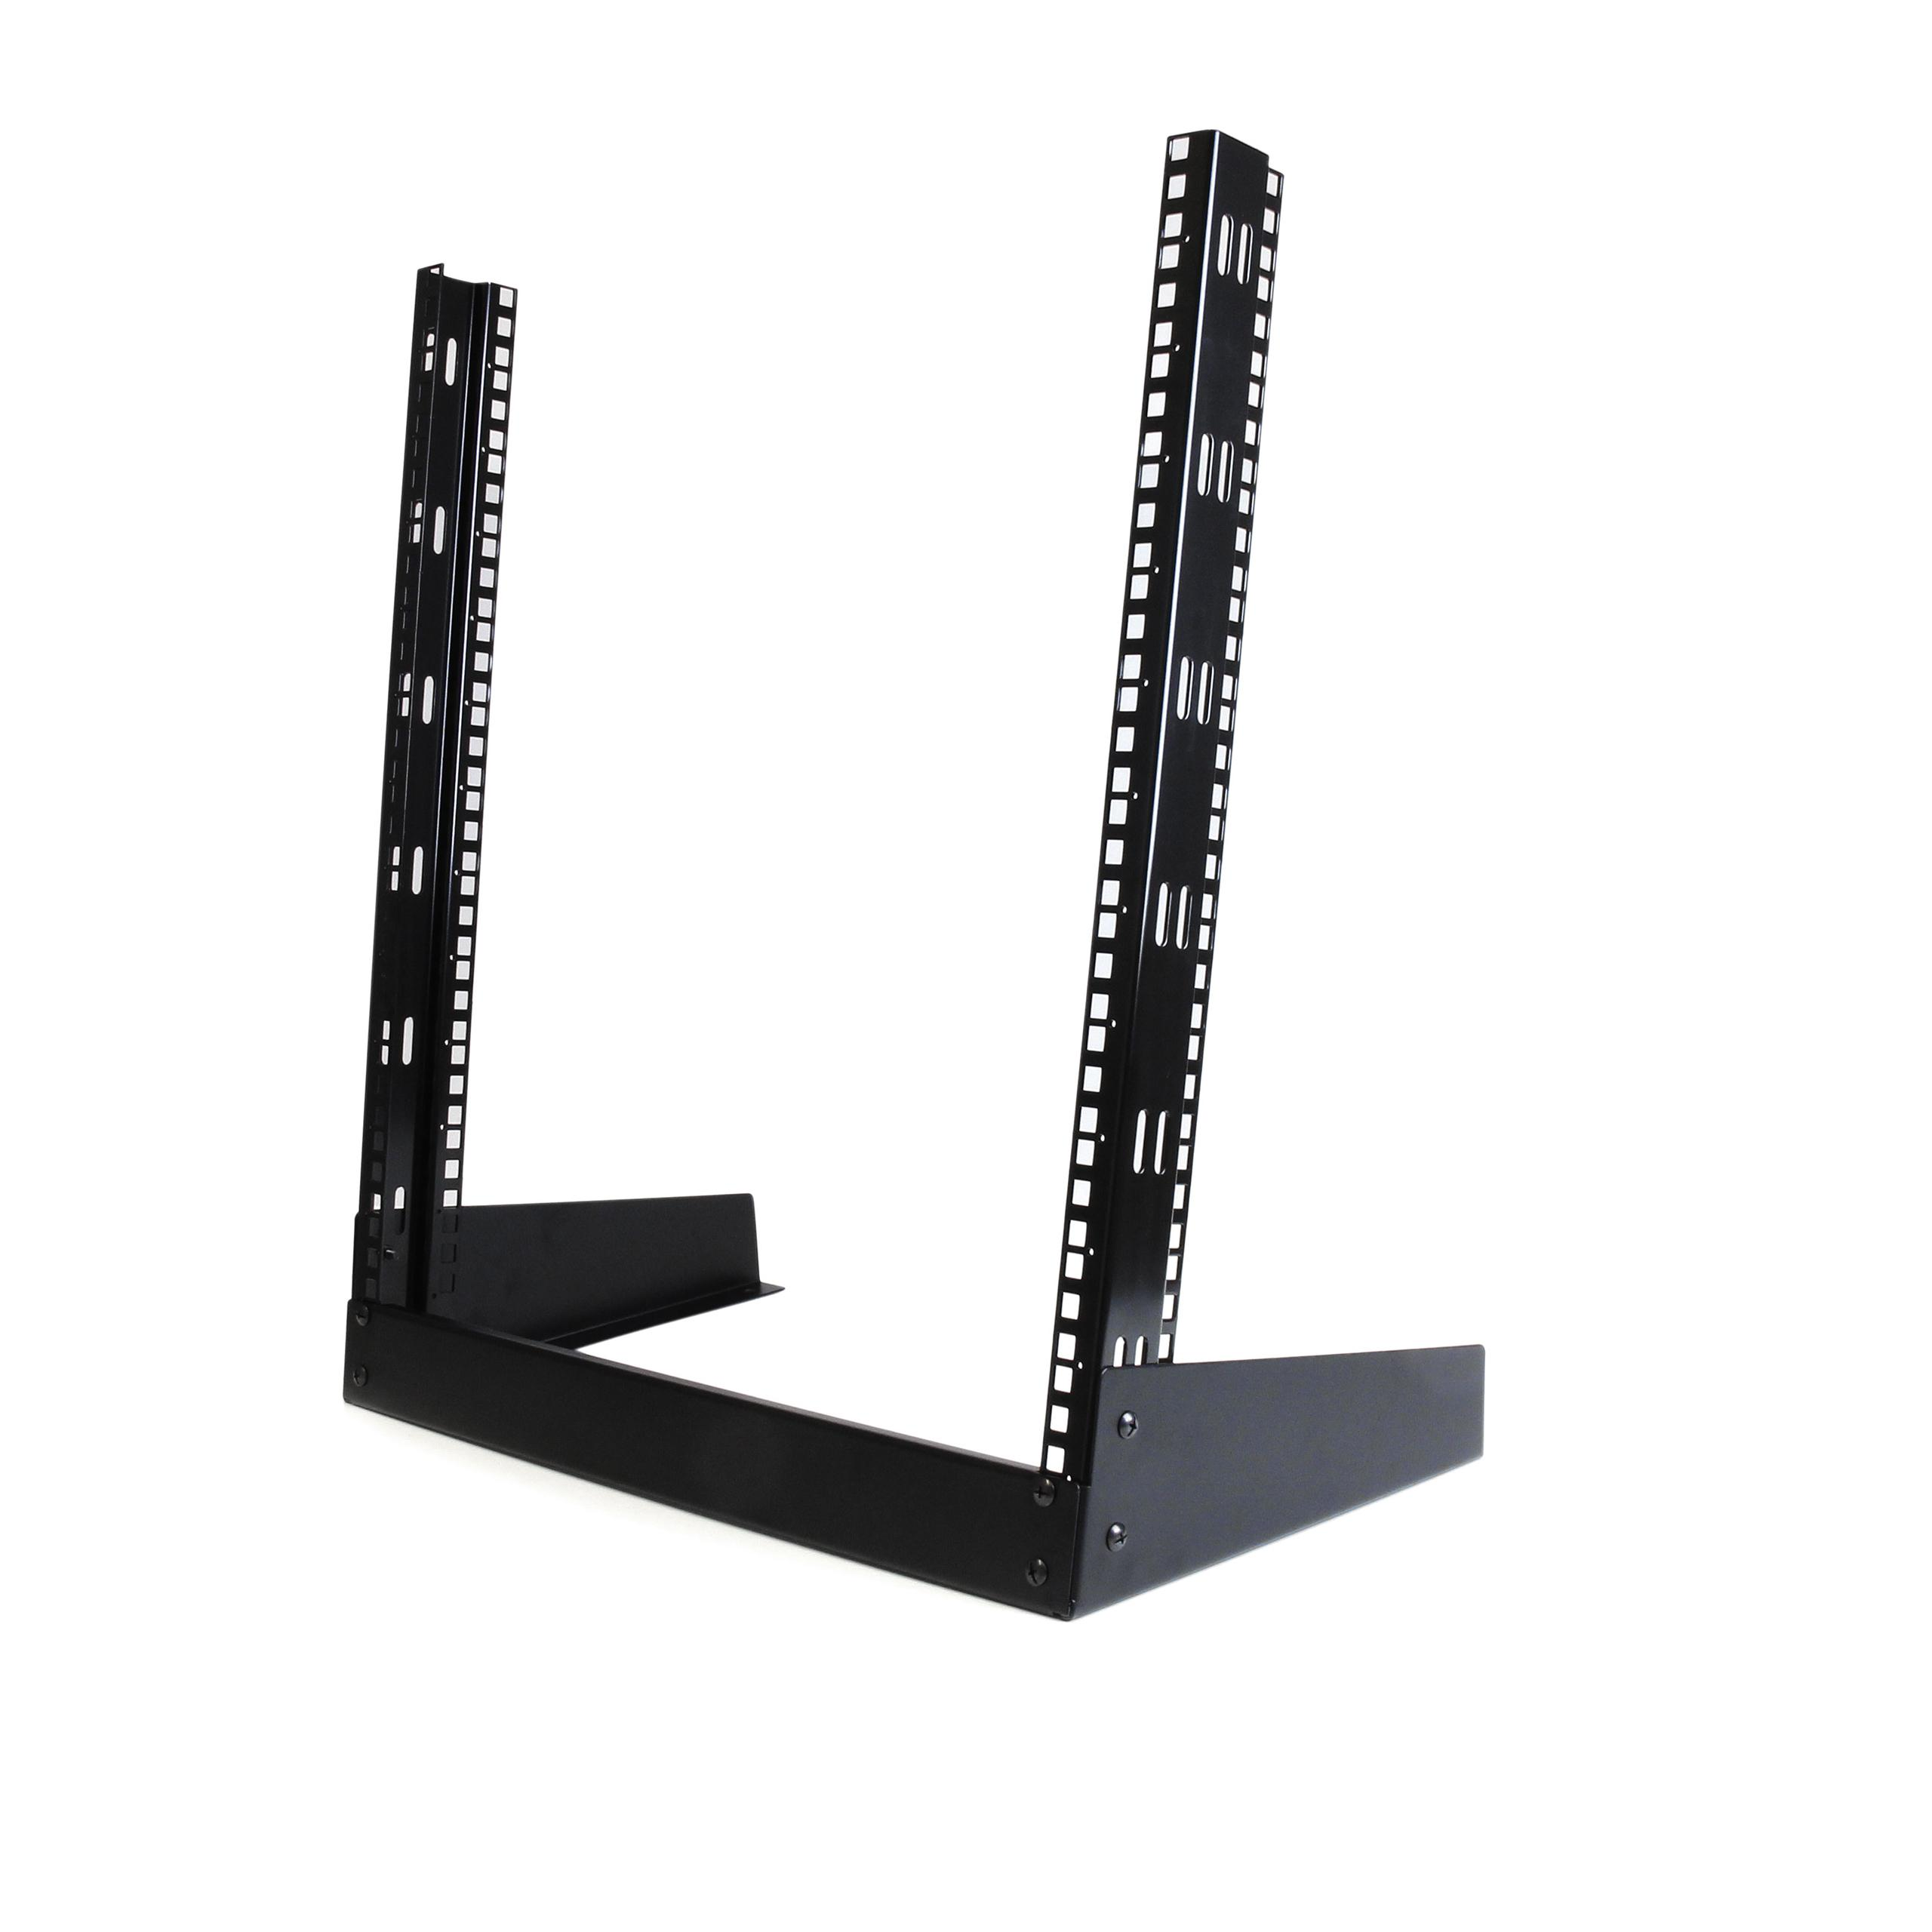 networx rack inch picture mount of patch panel store port cable shelf computer